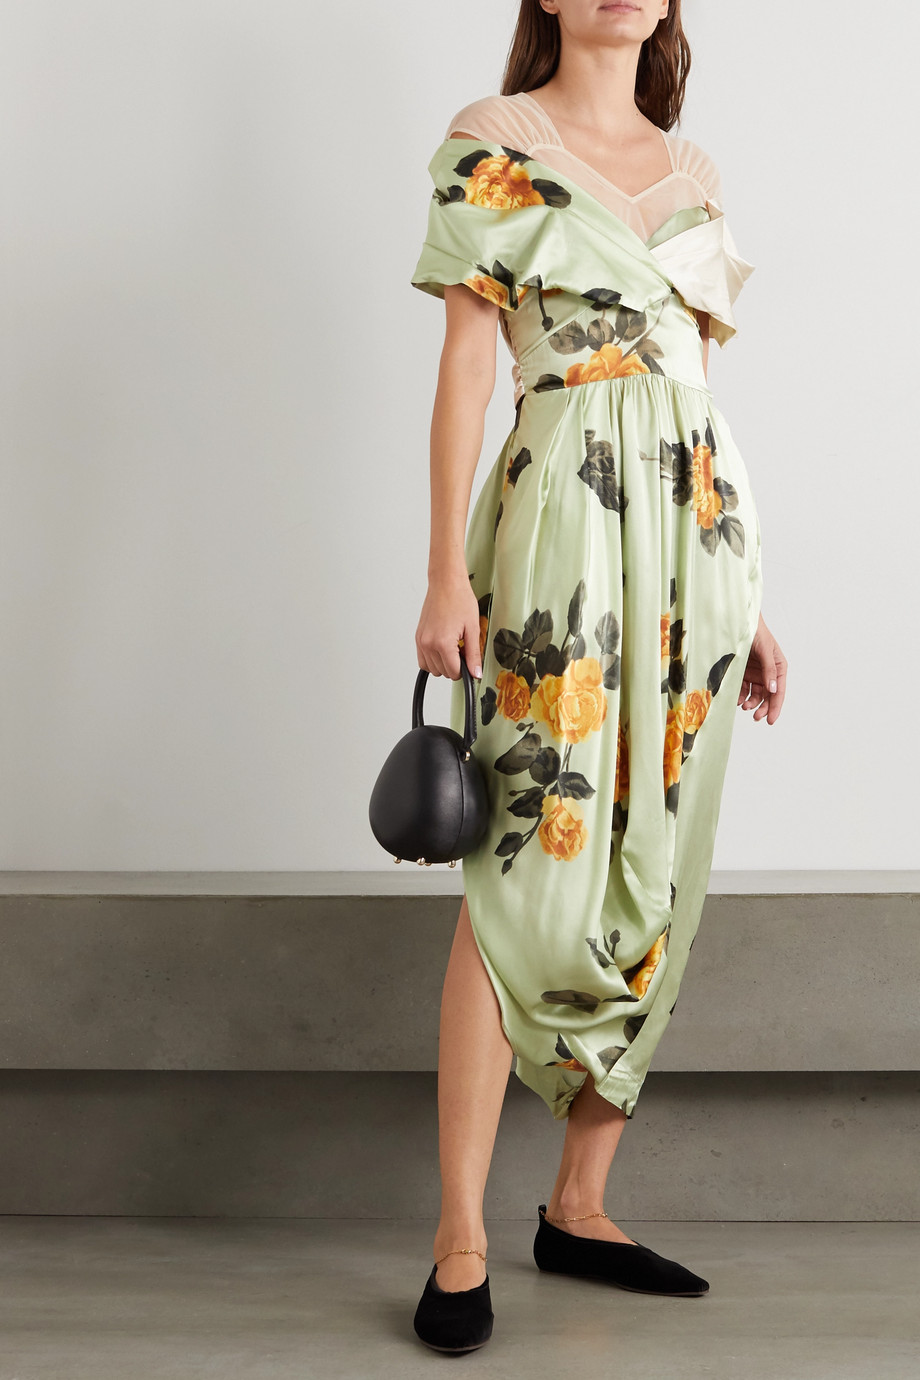 Simone Rocha Asymmetric bow-detailed floral-print silk-satin and tulle dress